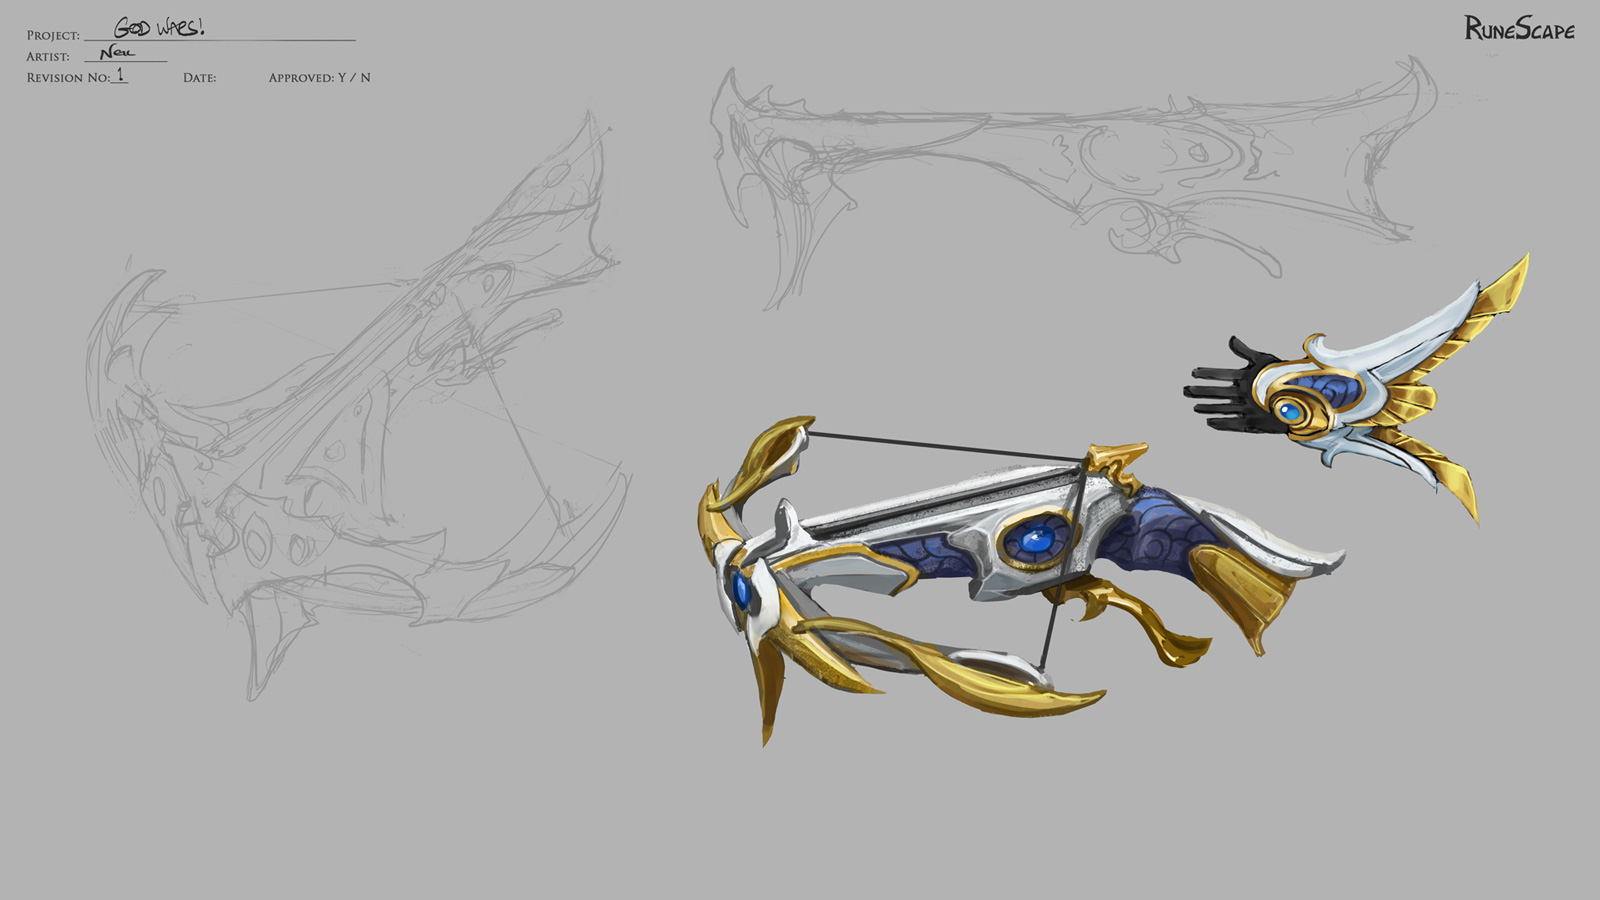 Concept art of the crossbow